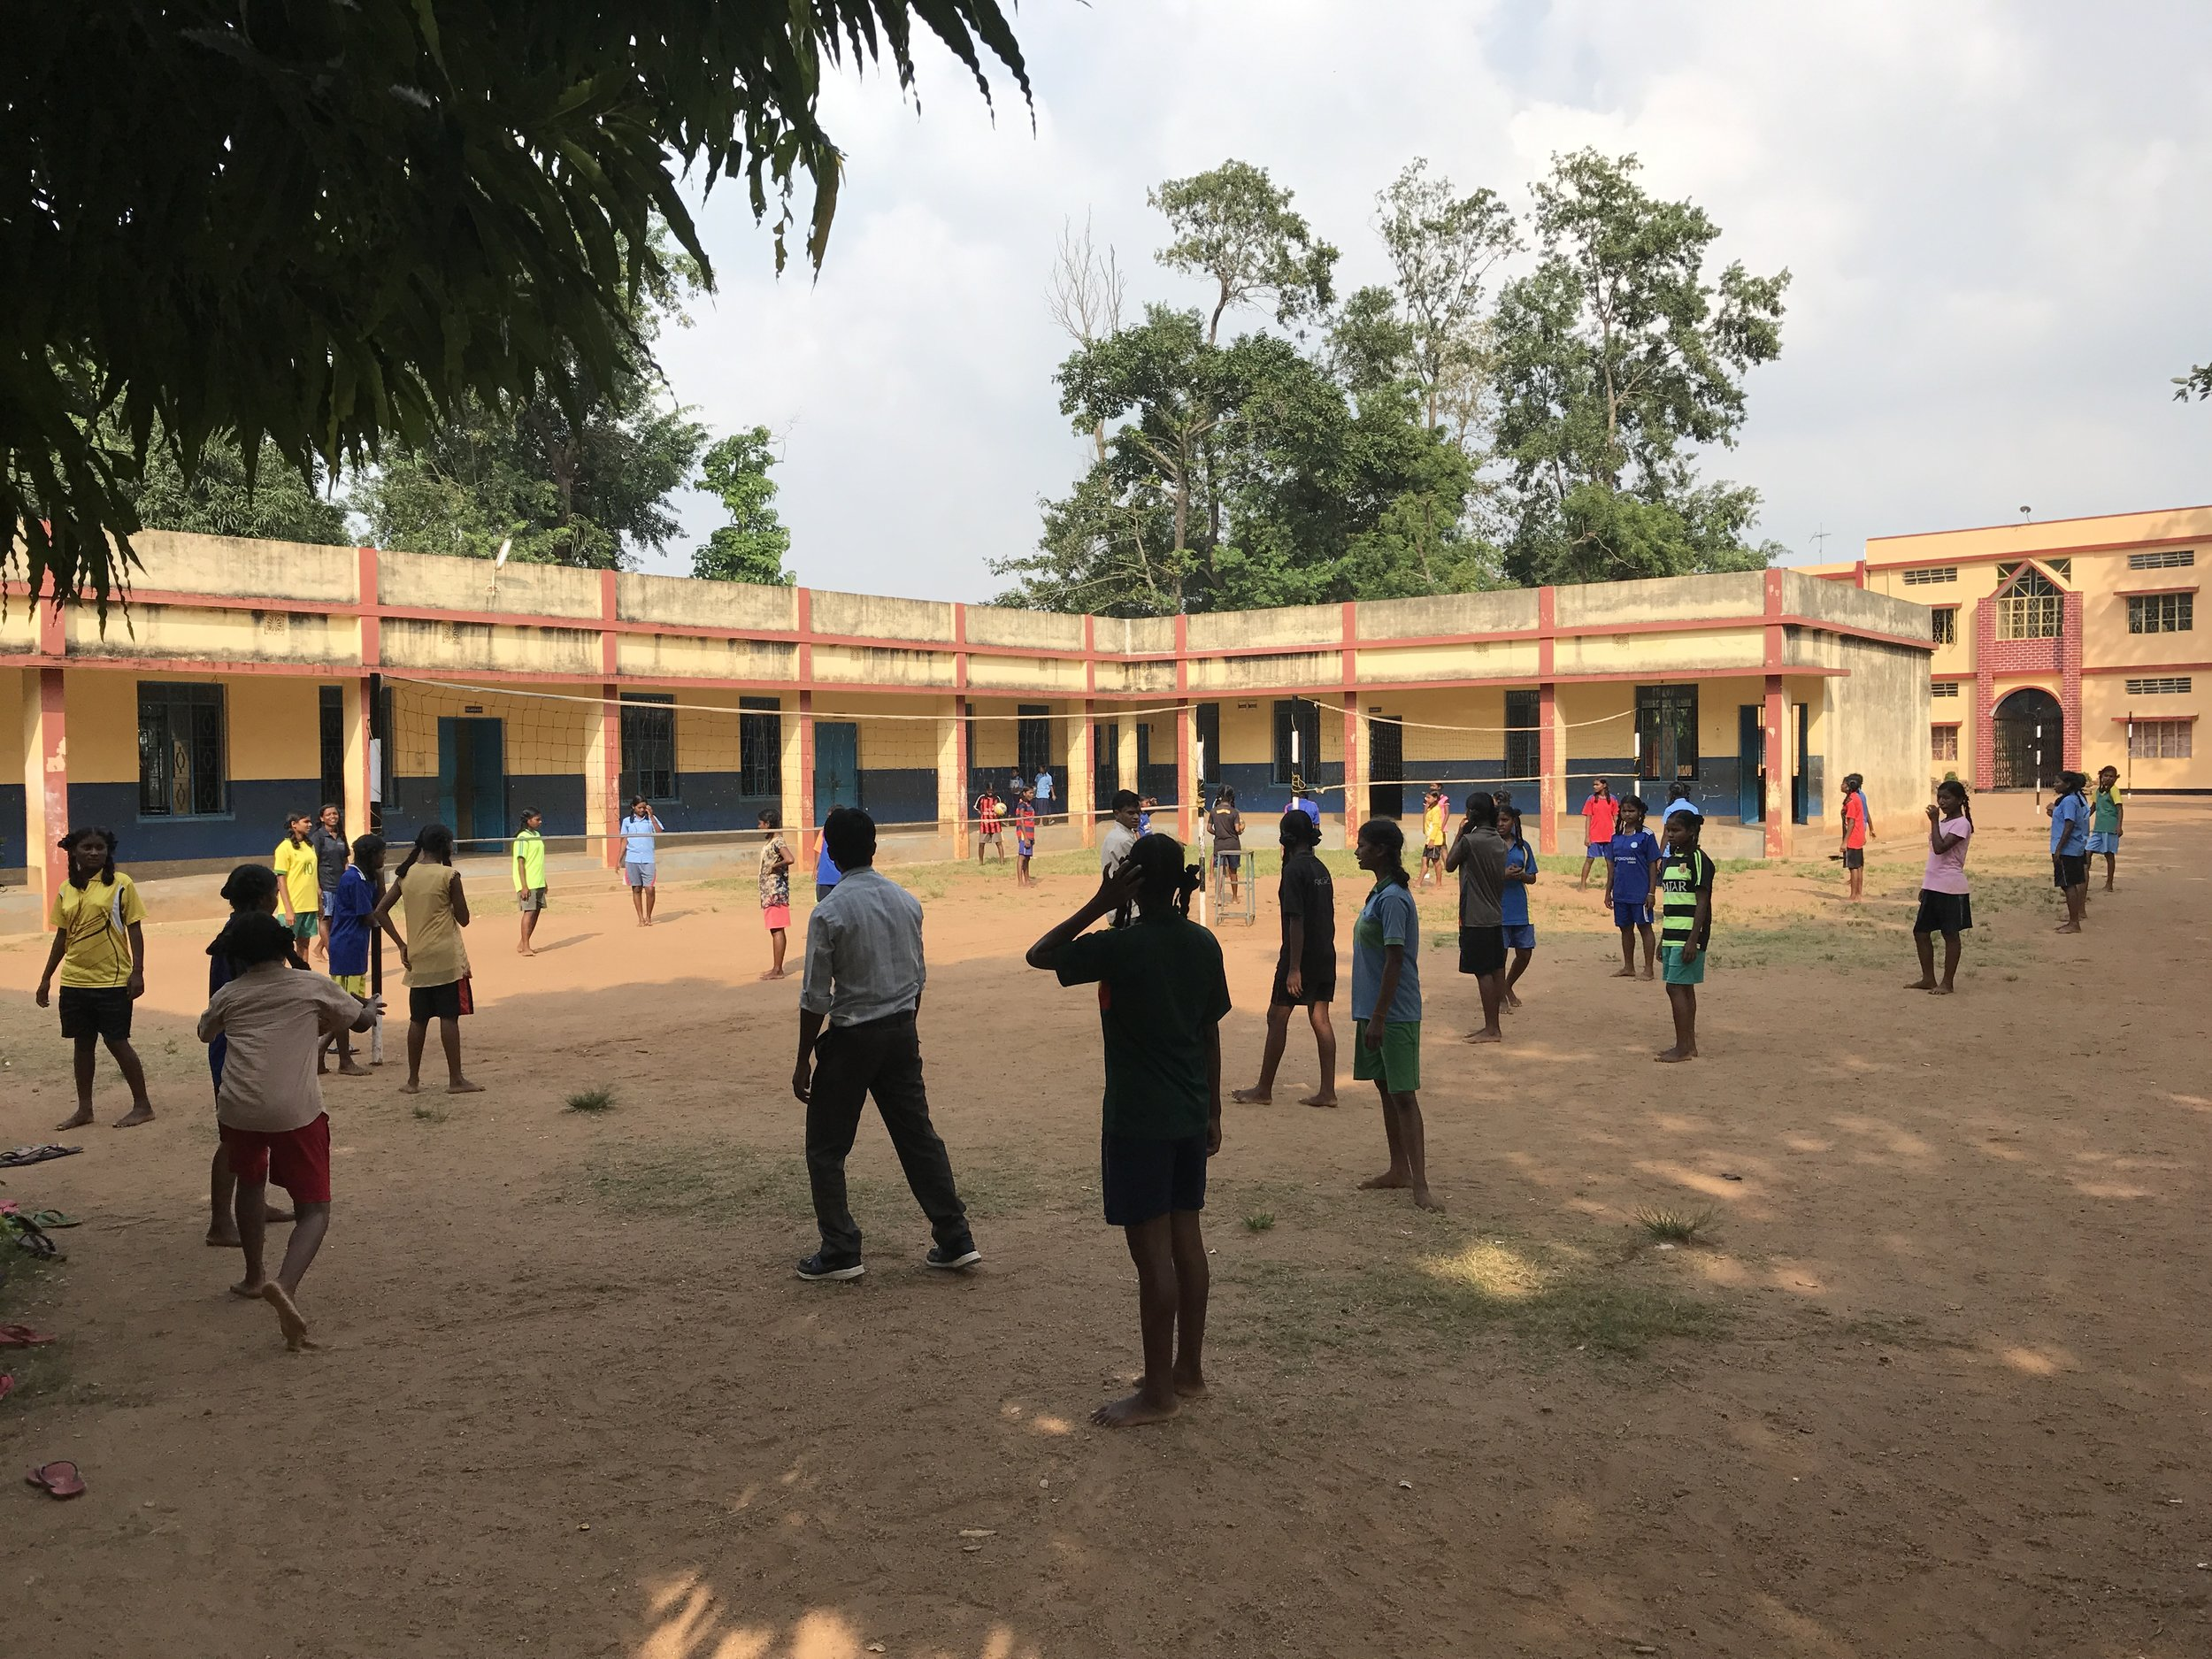 a game of volleyball at the primary school bernard established and taught at for roughly 60 years